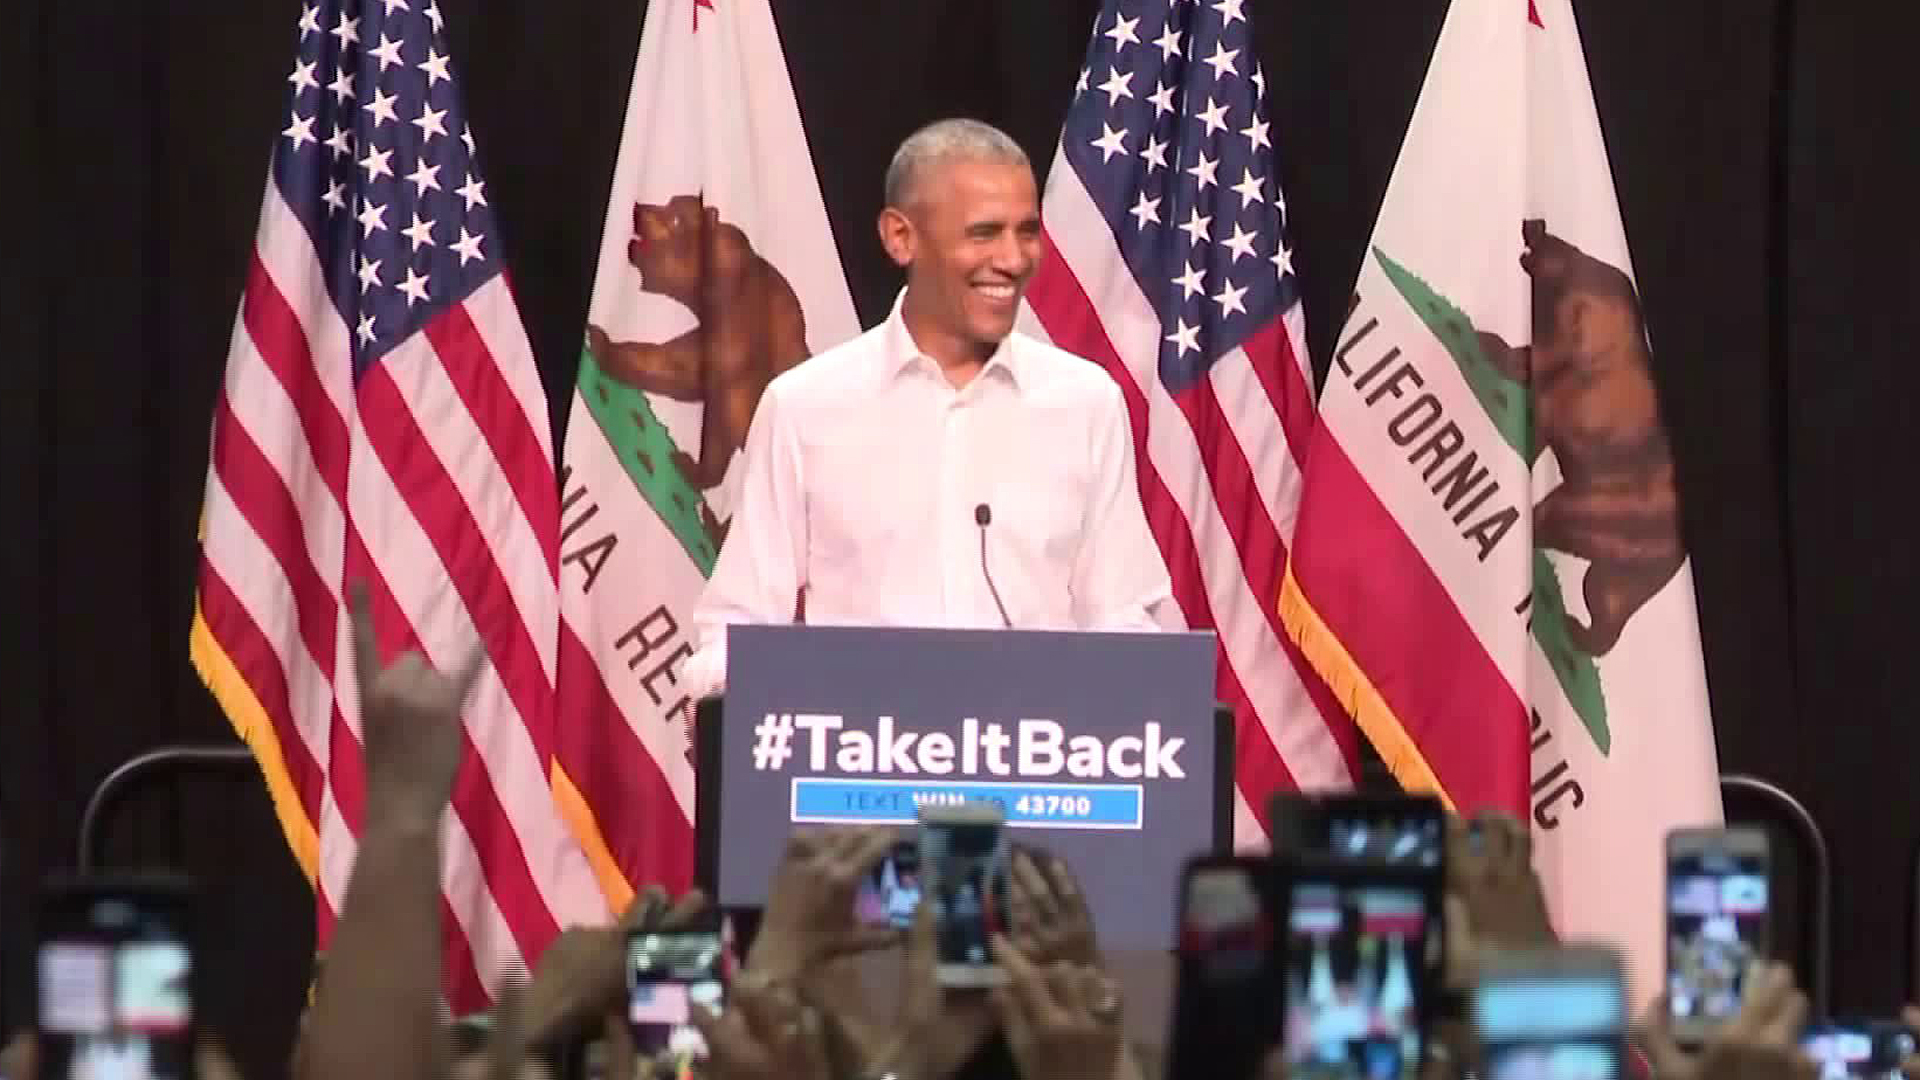 Former President Barack Obama speaks at a rally for Democrats in Anaheim on Sept. 8, 2018. (Credit: CNN)